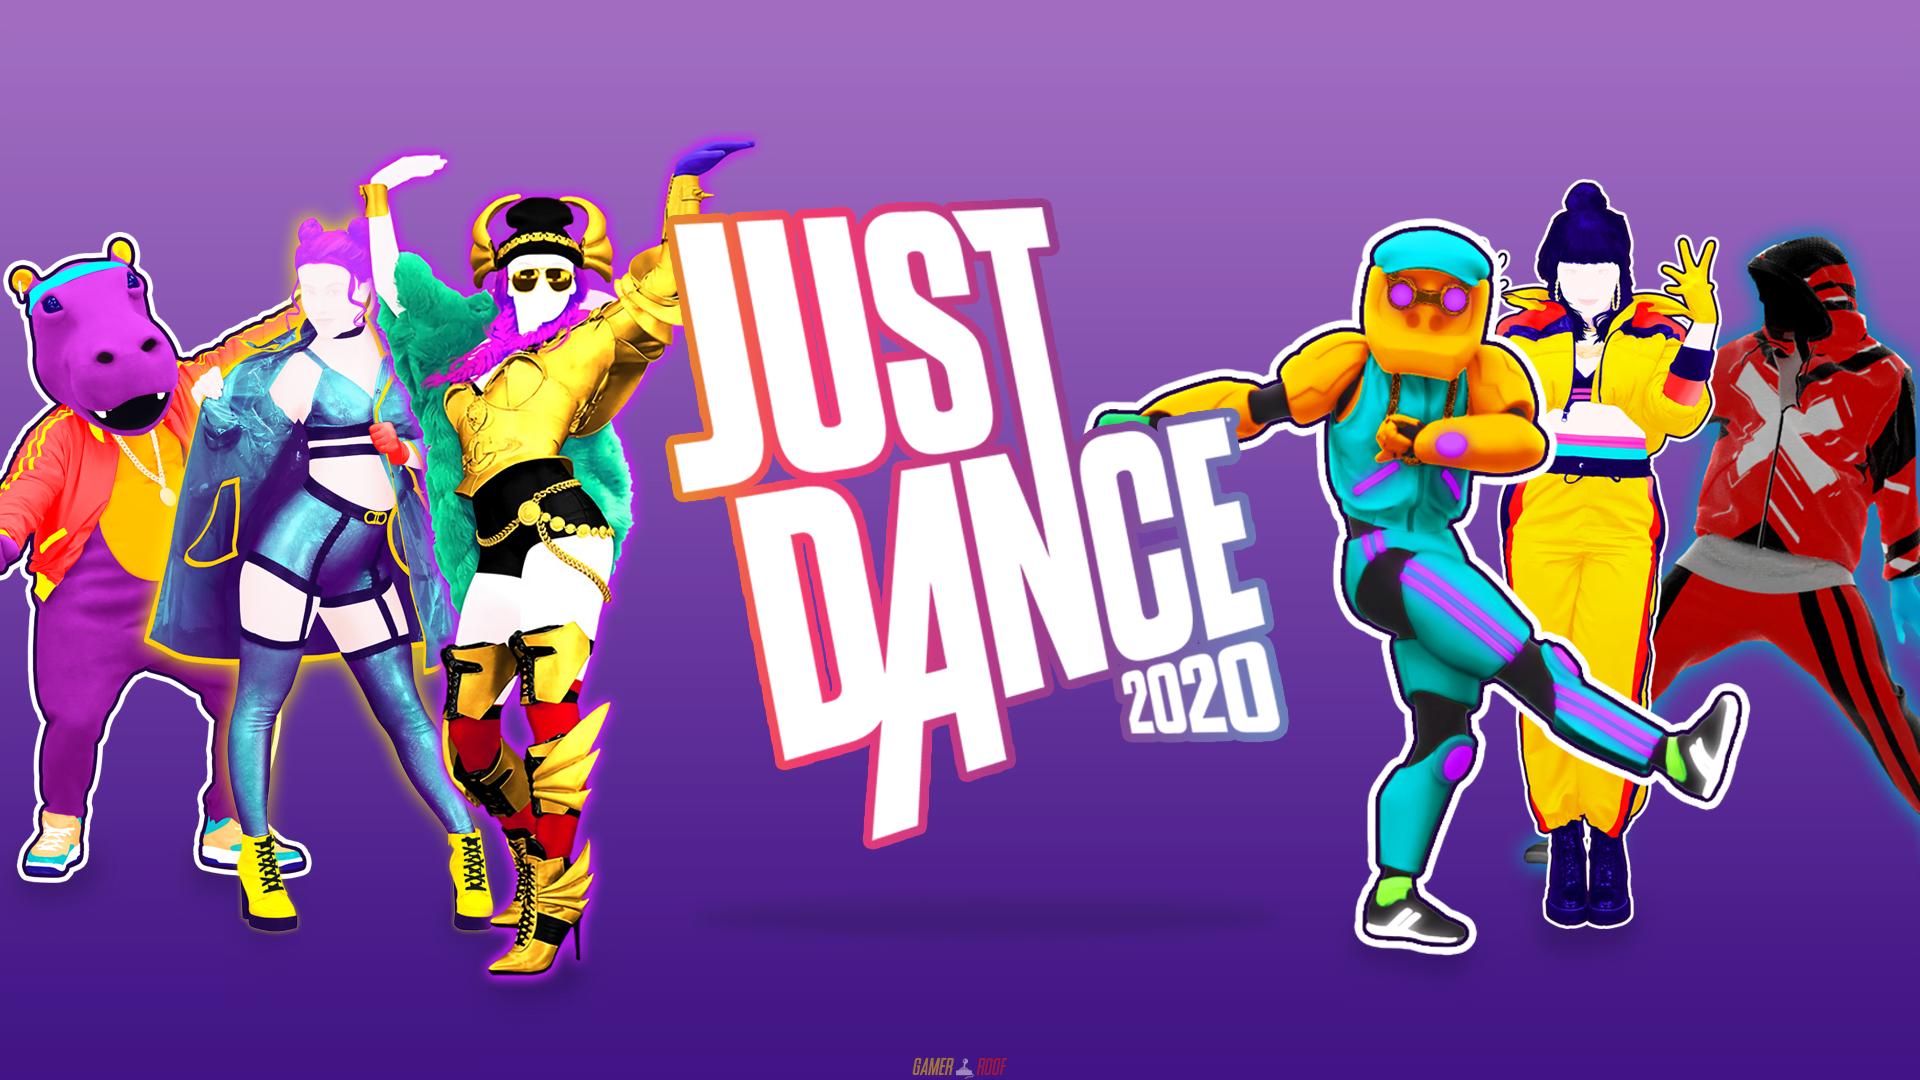 Just Dance 2020 Ps4 Full Version Free Download Best New Game Just Dance Dance Games Pc Games Download